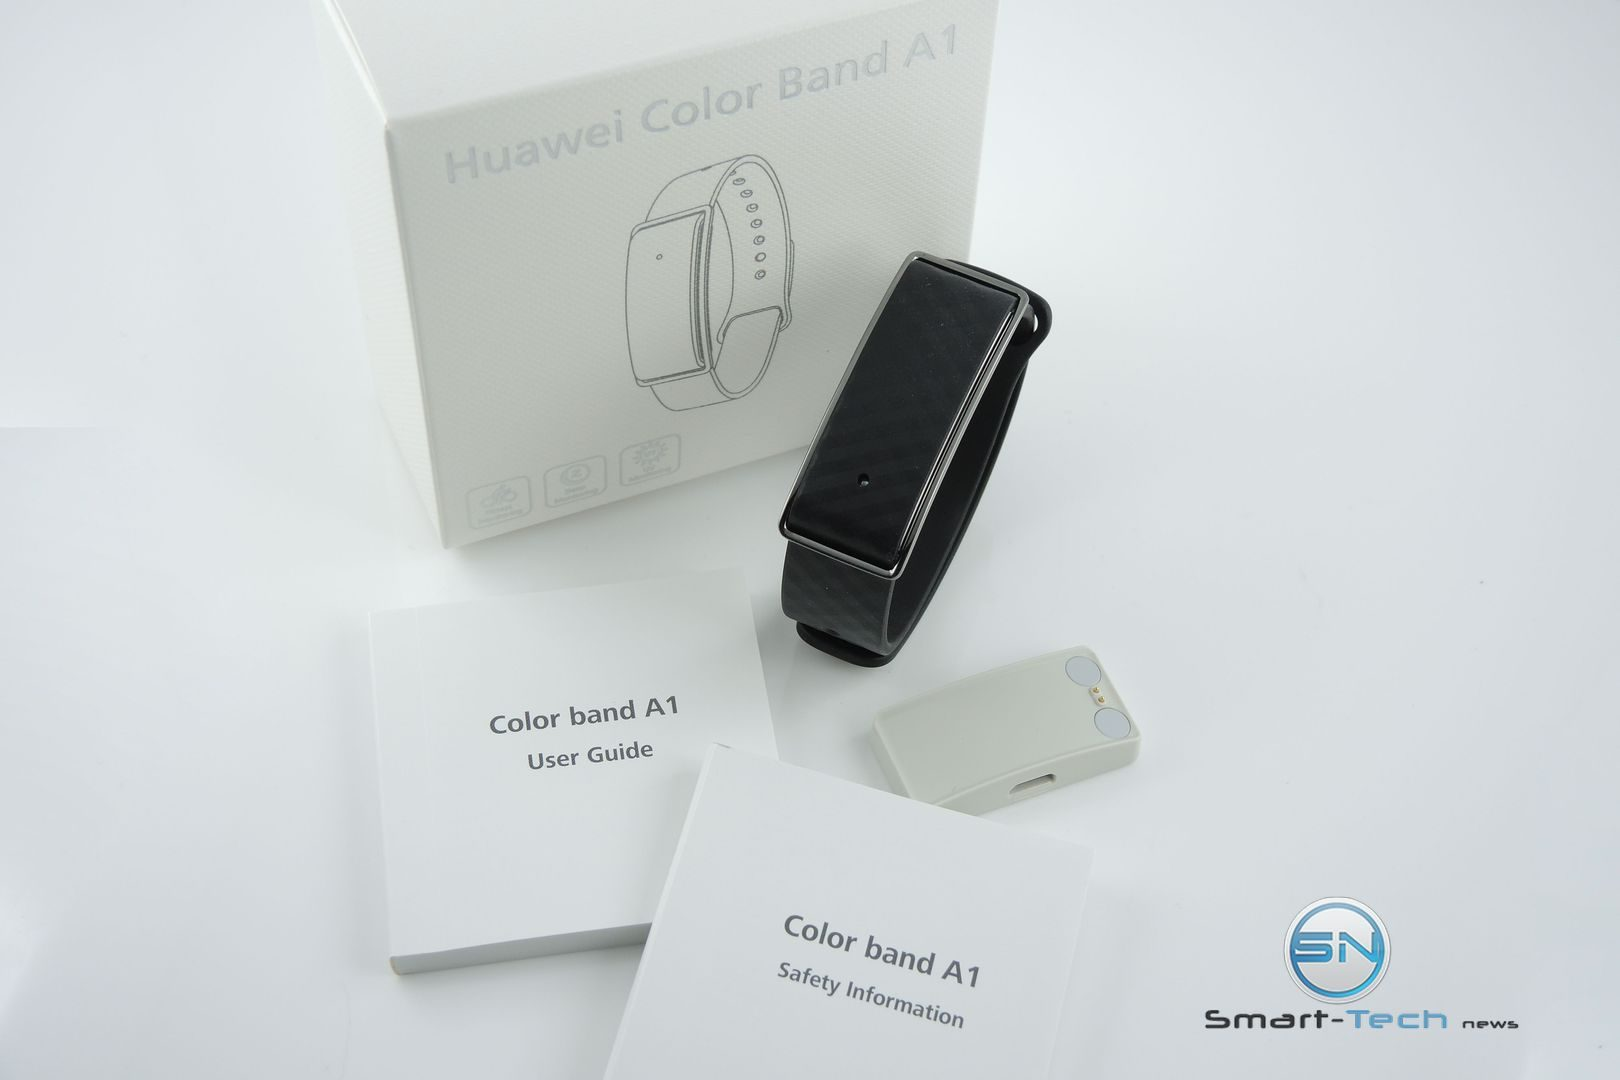 unboxing-huawei-colorband-smarttechnews